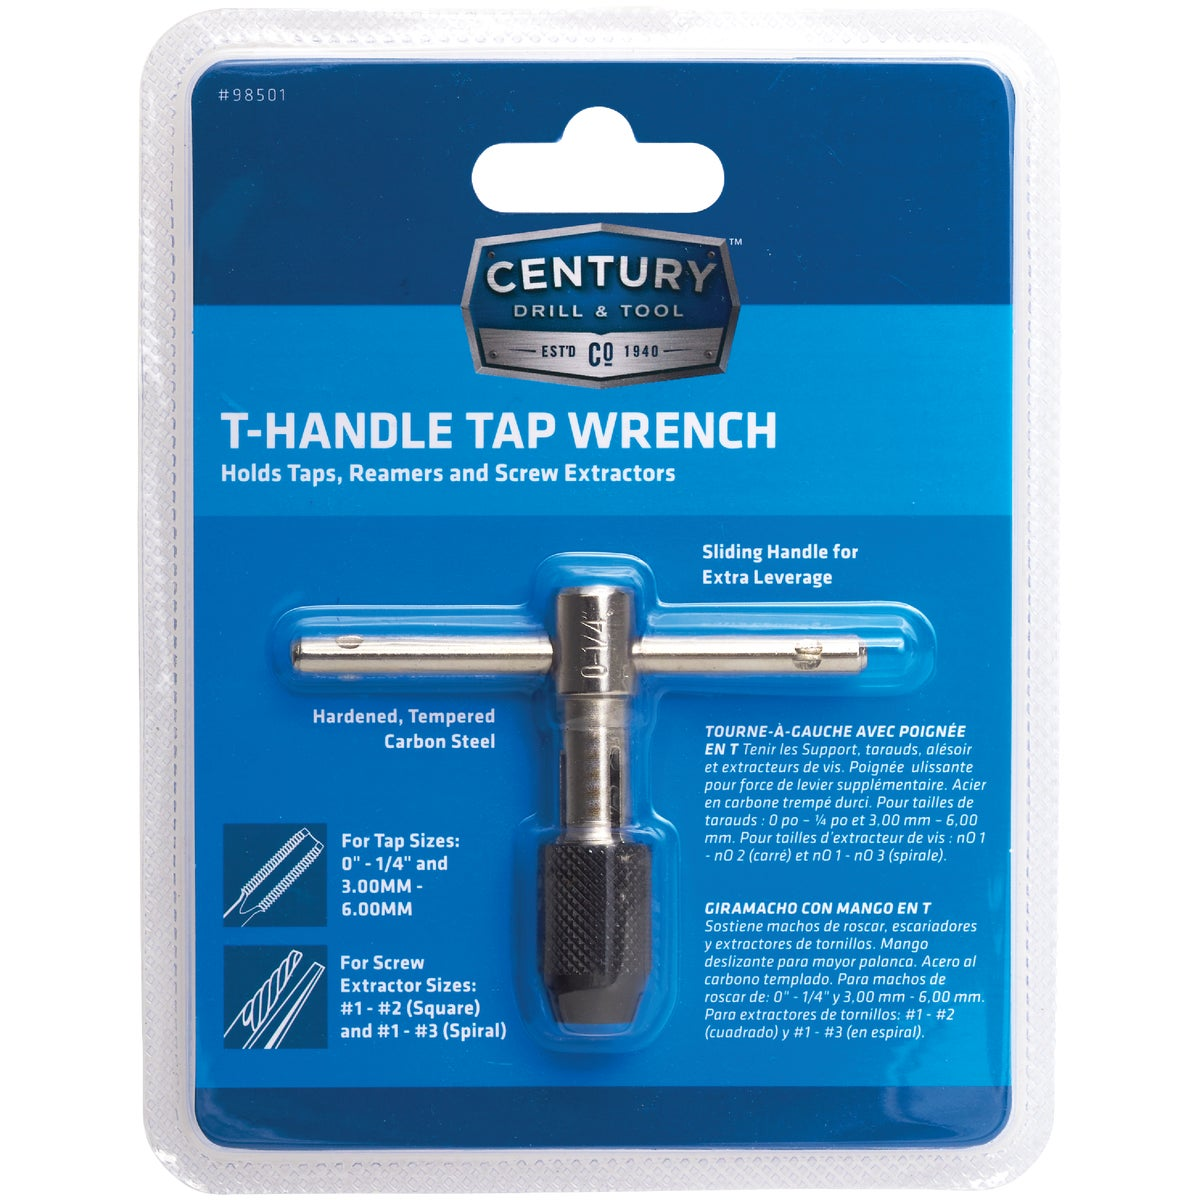 Irwin Hanson 0 - 1/4 In. T-Handle Tap Wrench